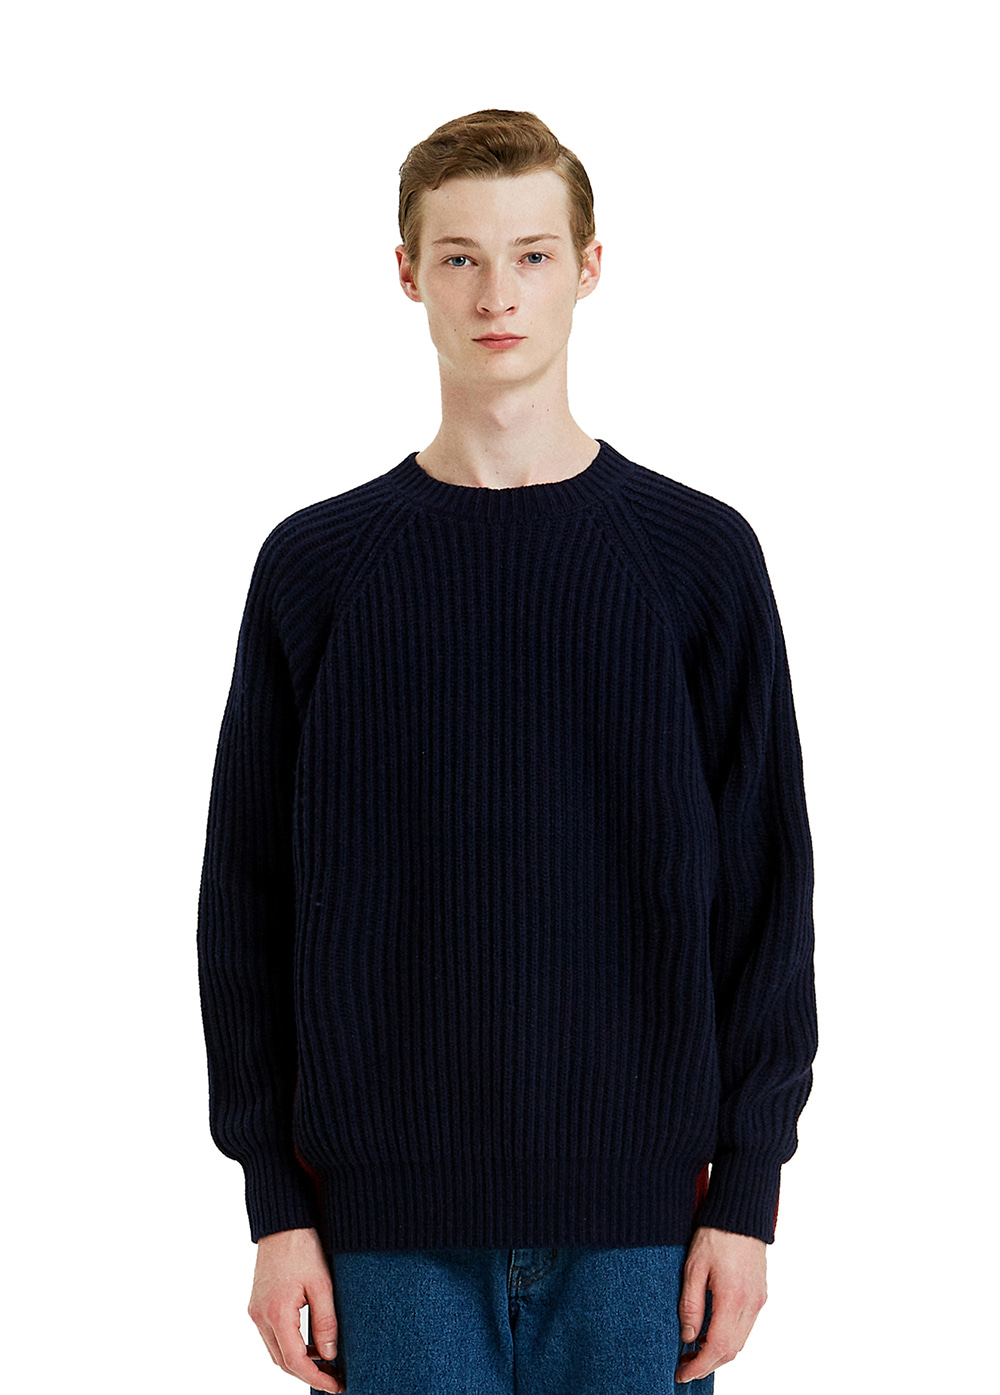 TWO-TONE COLOR BLOCK KNIT SWEATER navy